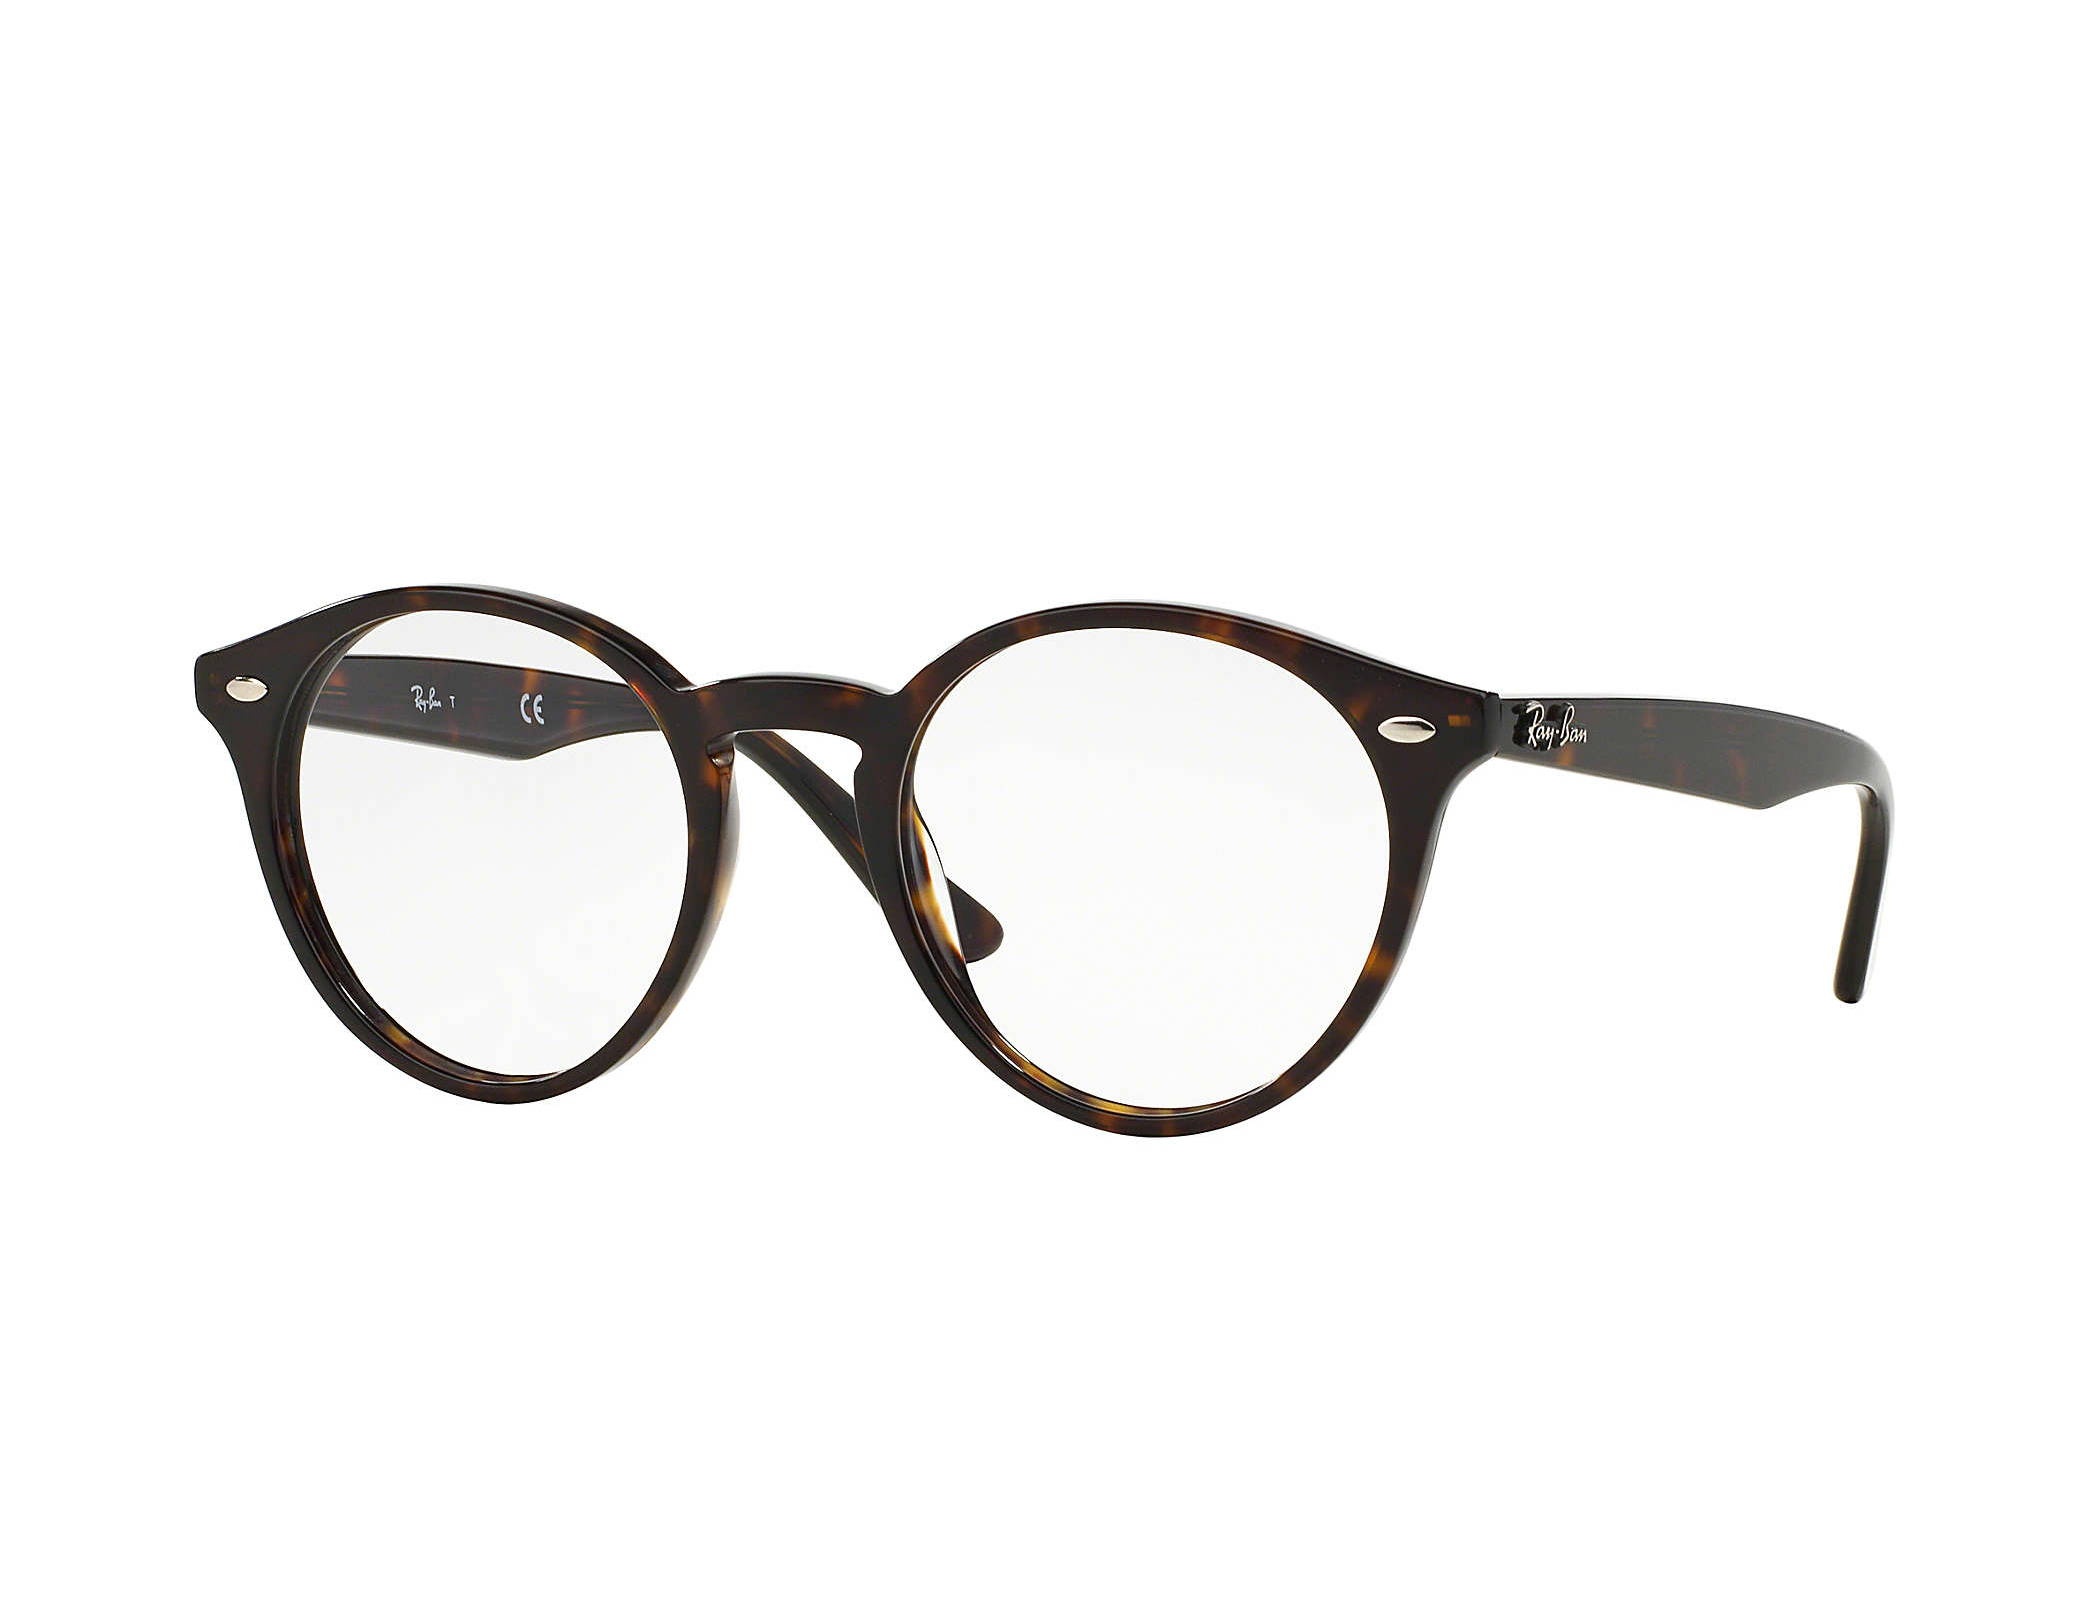 4adcc222dad TOP 10 RAY-BAN GLASSES 2018 – Glasses Corp